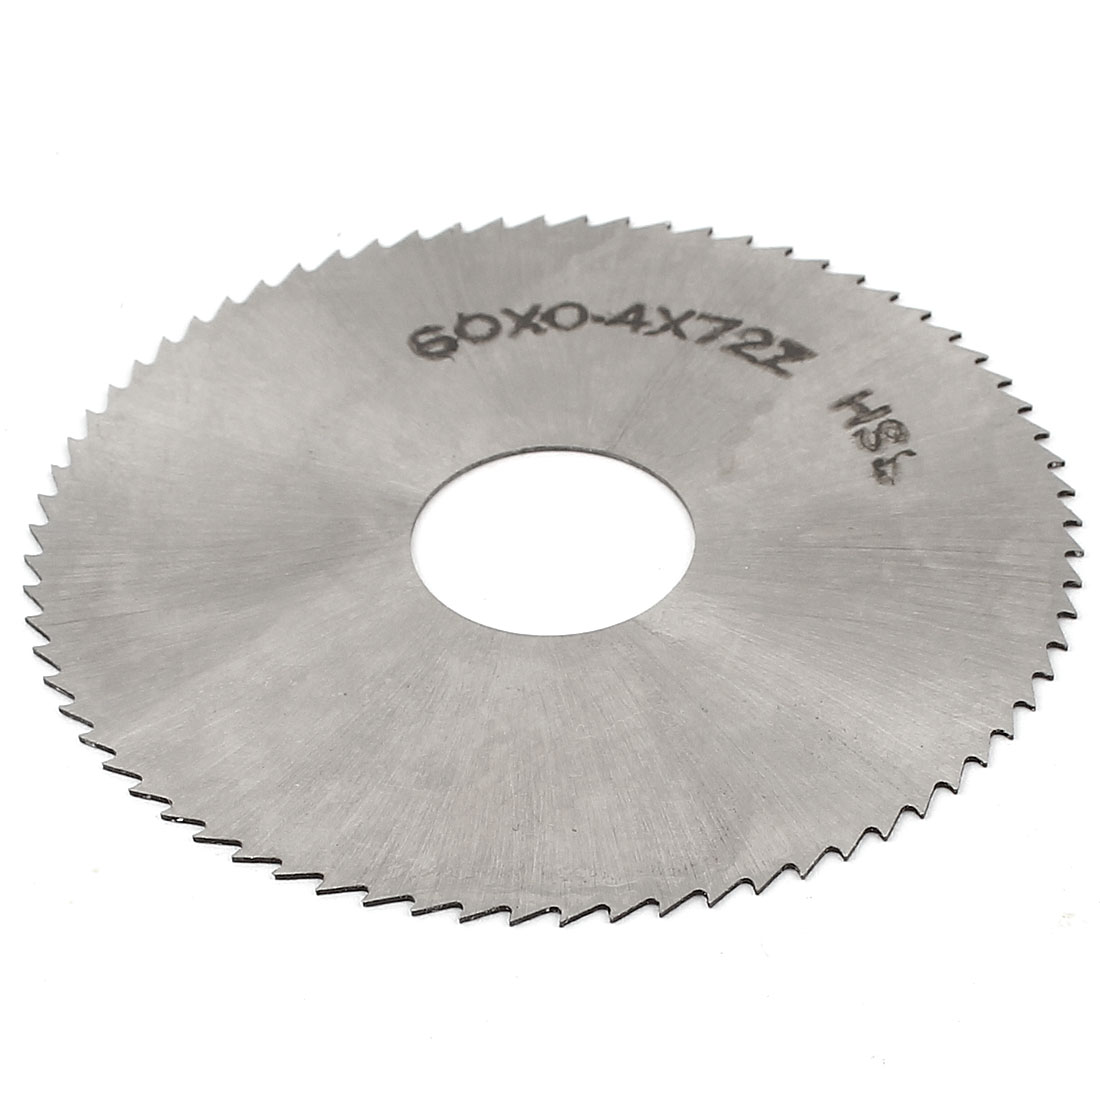 60mm OD 0.4mm Thickness 16mm Arbor 72 Teeth Circular Machinist Milling Cutter Slitting Saw